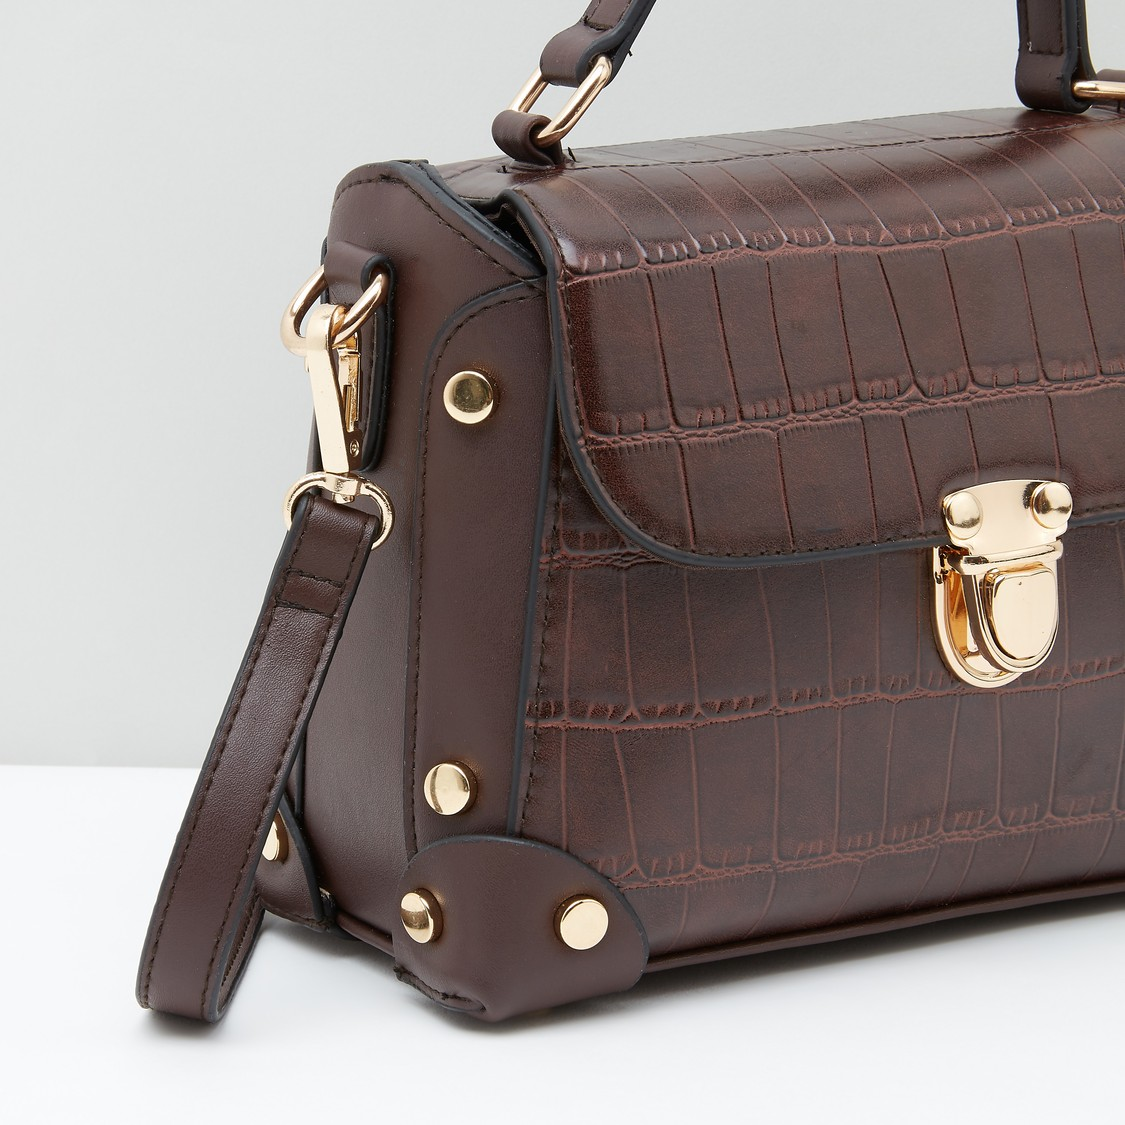 Textured Satchel Bag with Press and Lock Closure